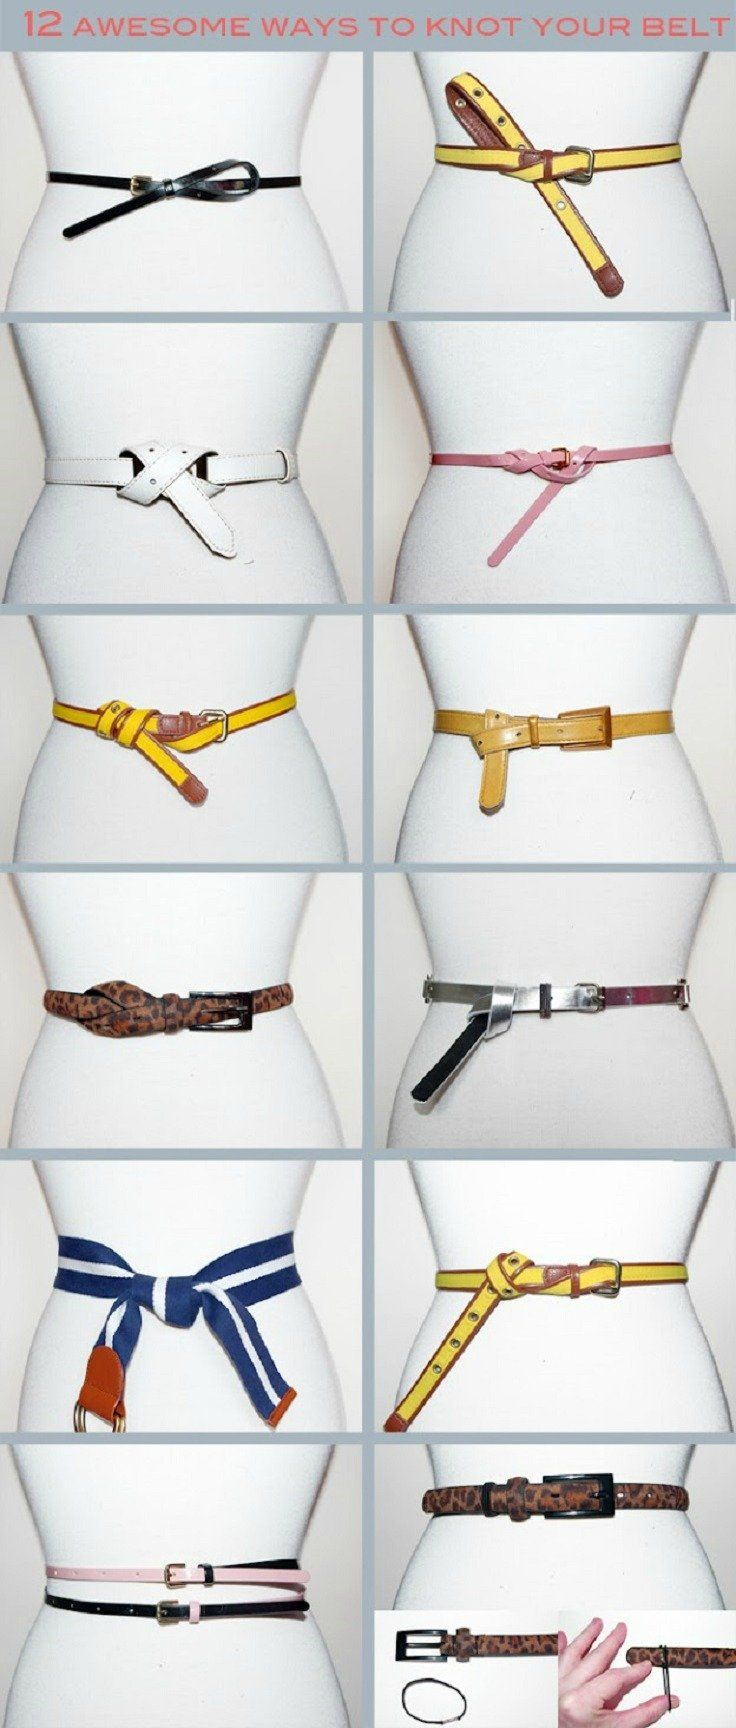 12 Awesome Ways to Knot Your Belt